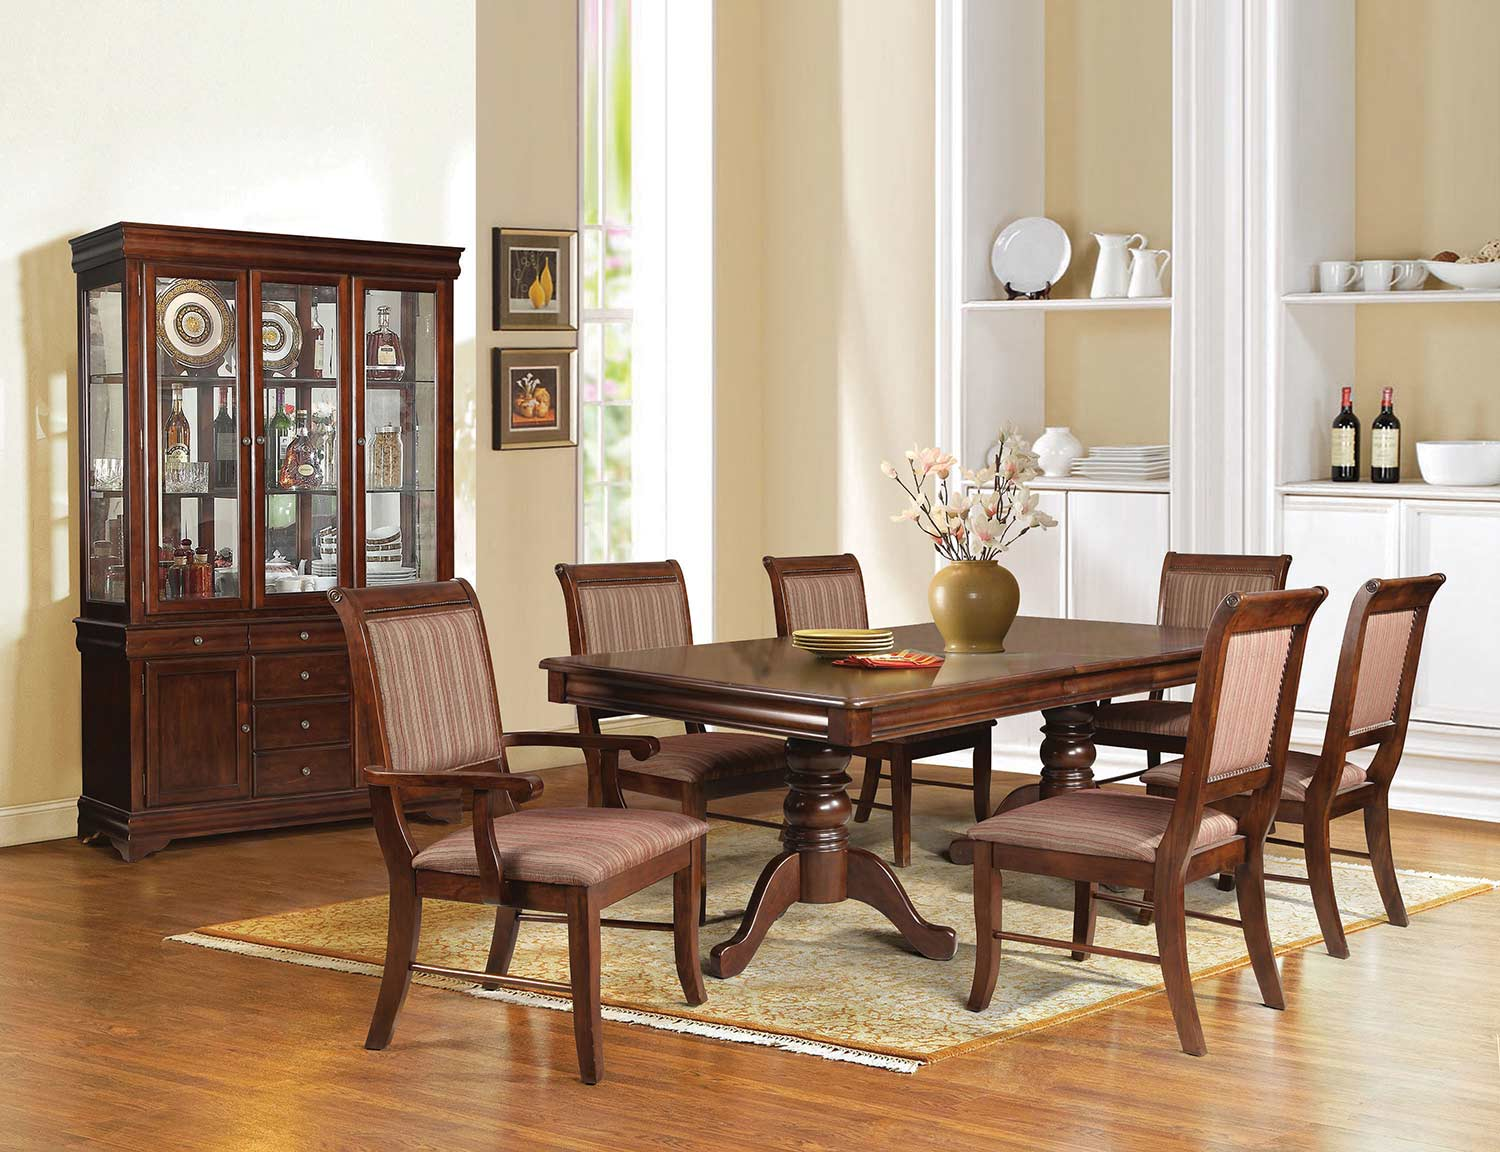 Acme Mahavira Dining Set with Double Pedestal - Espresso